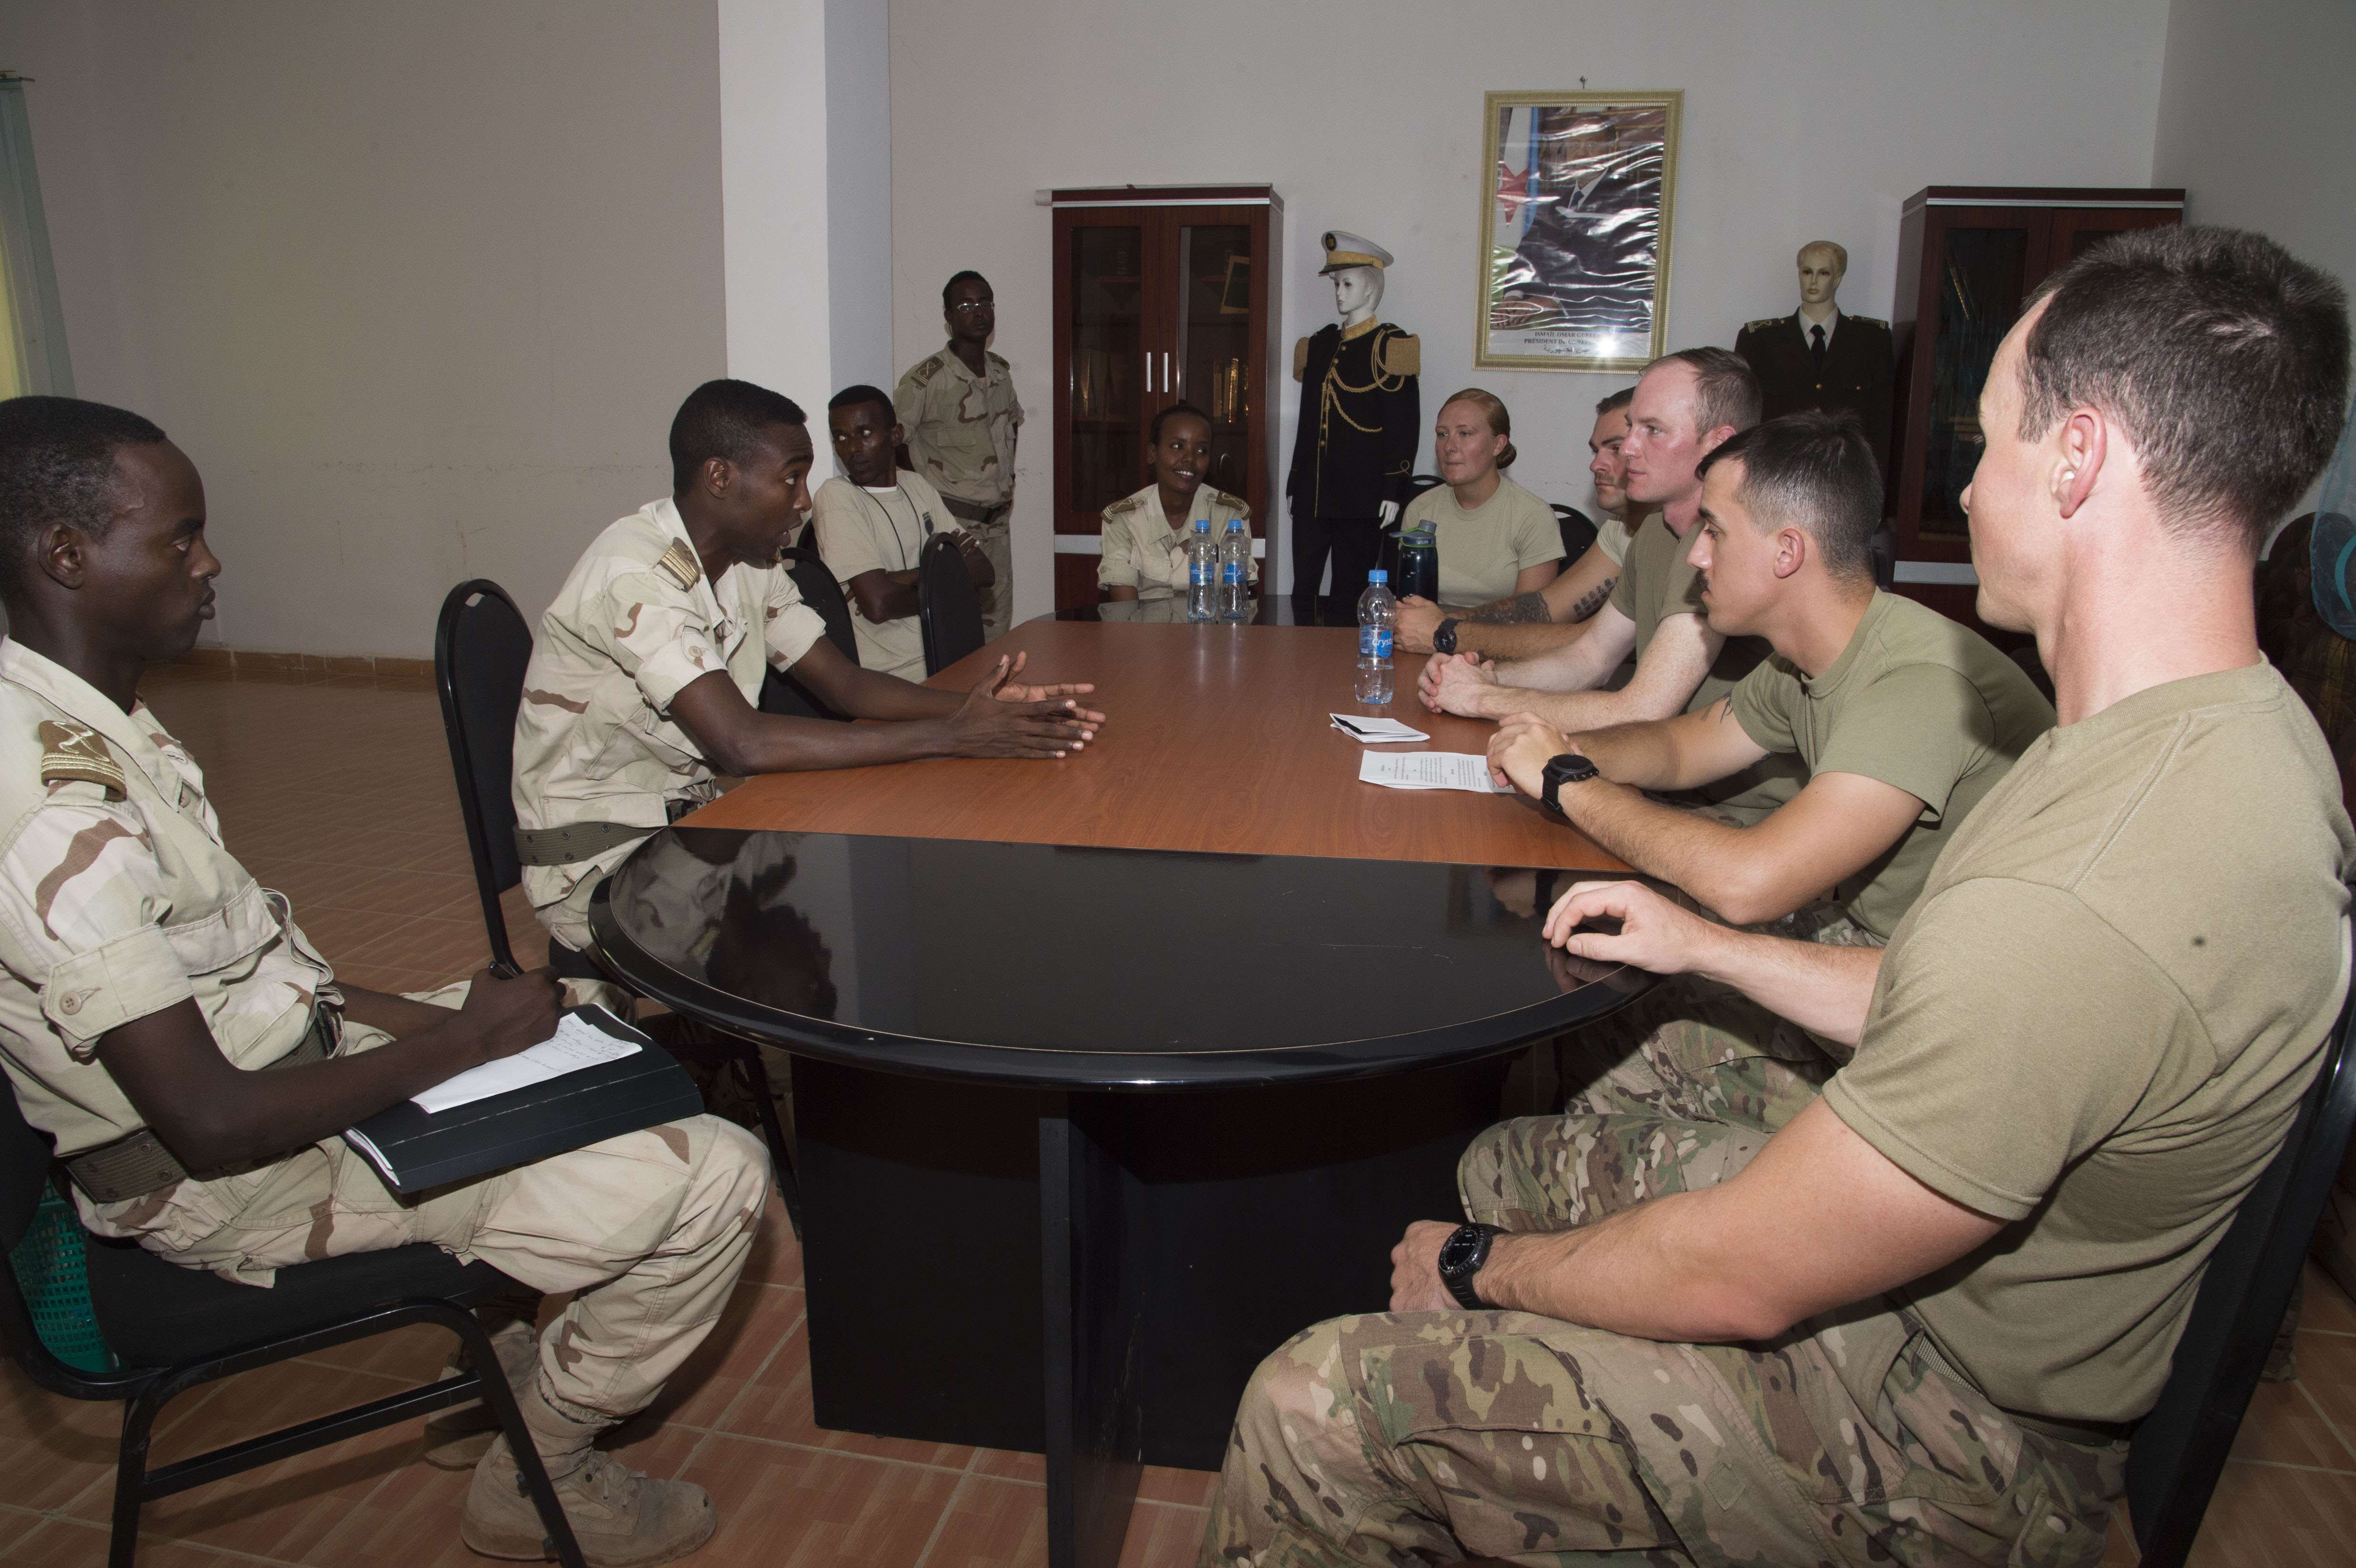 Djibouti's Arta Interservices Military Academy cadets engage in conversation with U.S. Army 403rd Civil Affairs members acting as Somali key leaders during a training scenario May 18, 2016, at Arta, Djibouti. The Civil Affairs team taught the cadets a variety of skills to include how to conduct meetings, key leader engagements and proper use of interpreters. (U.S. Air Force photo by Staff Sgt. Eric Summers Jr.)